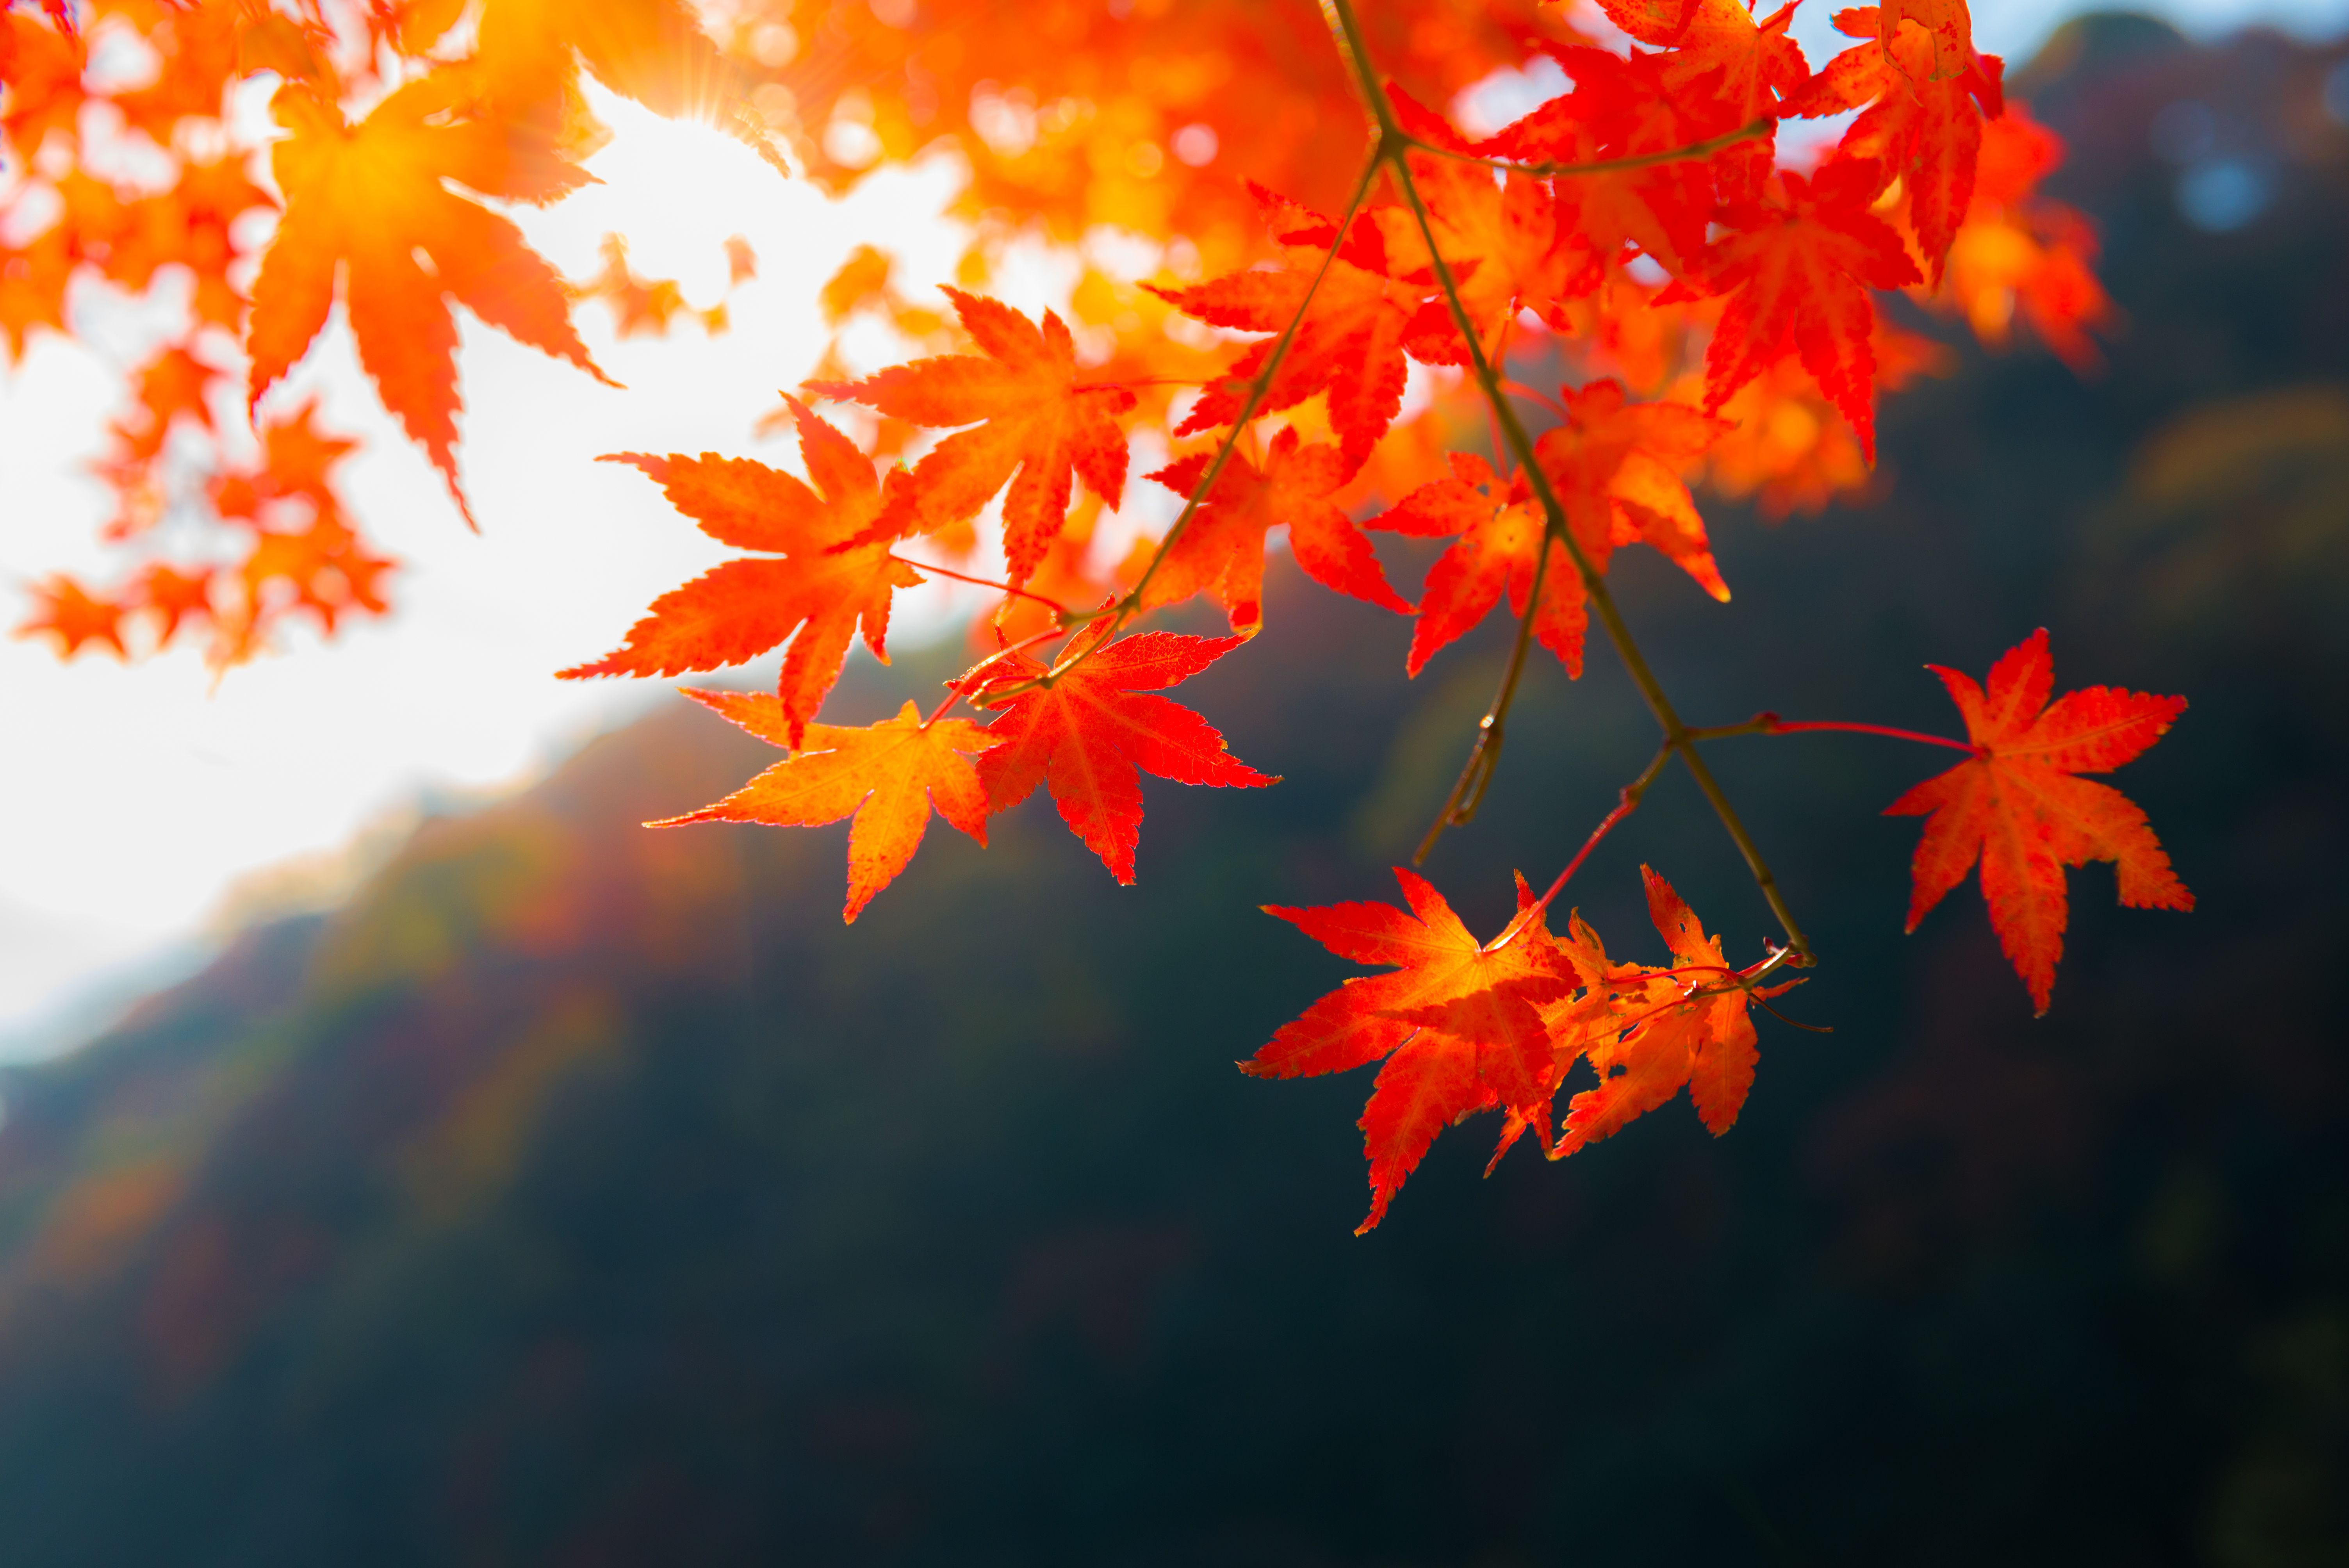 Literature Quotes Wallpapers Why Do Leaves Change Color In The Fall